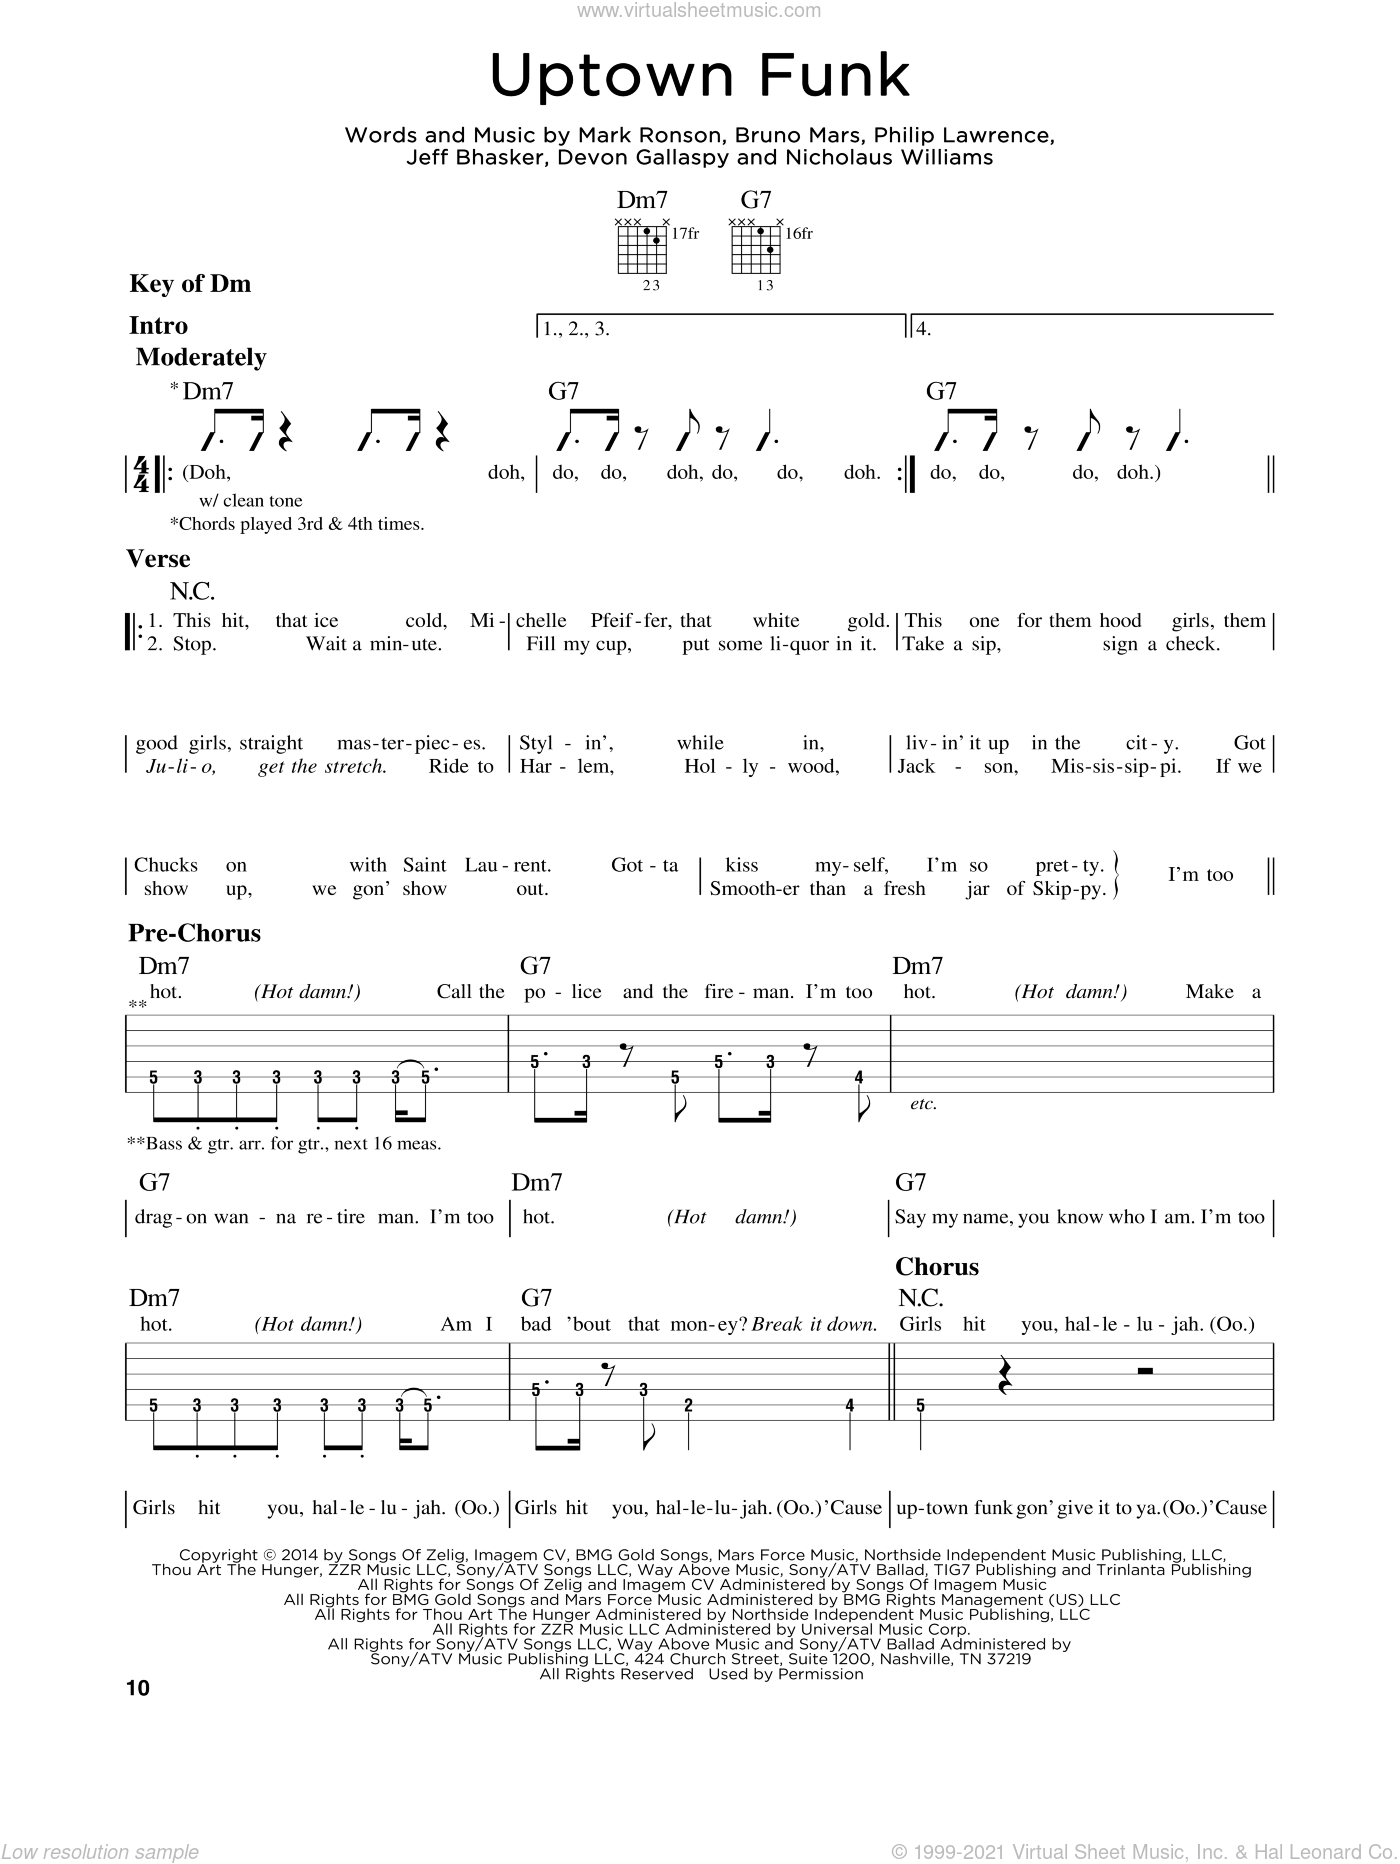 Uptown funk sheet music for guitar solo lead sheet by philip